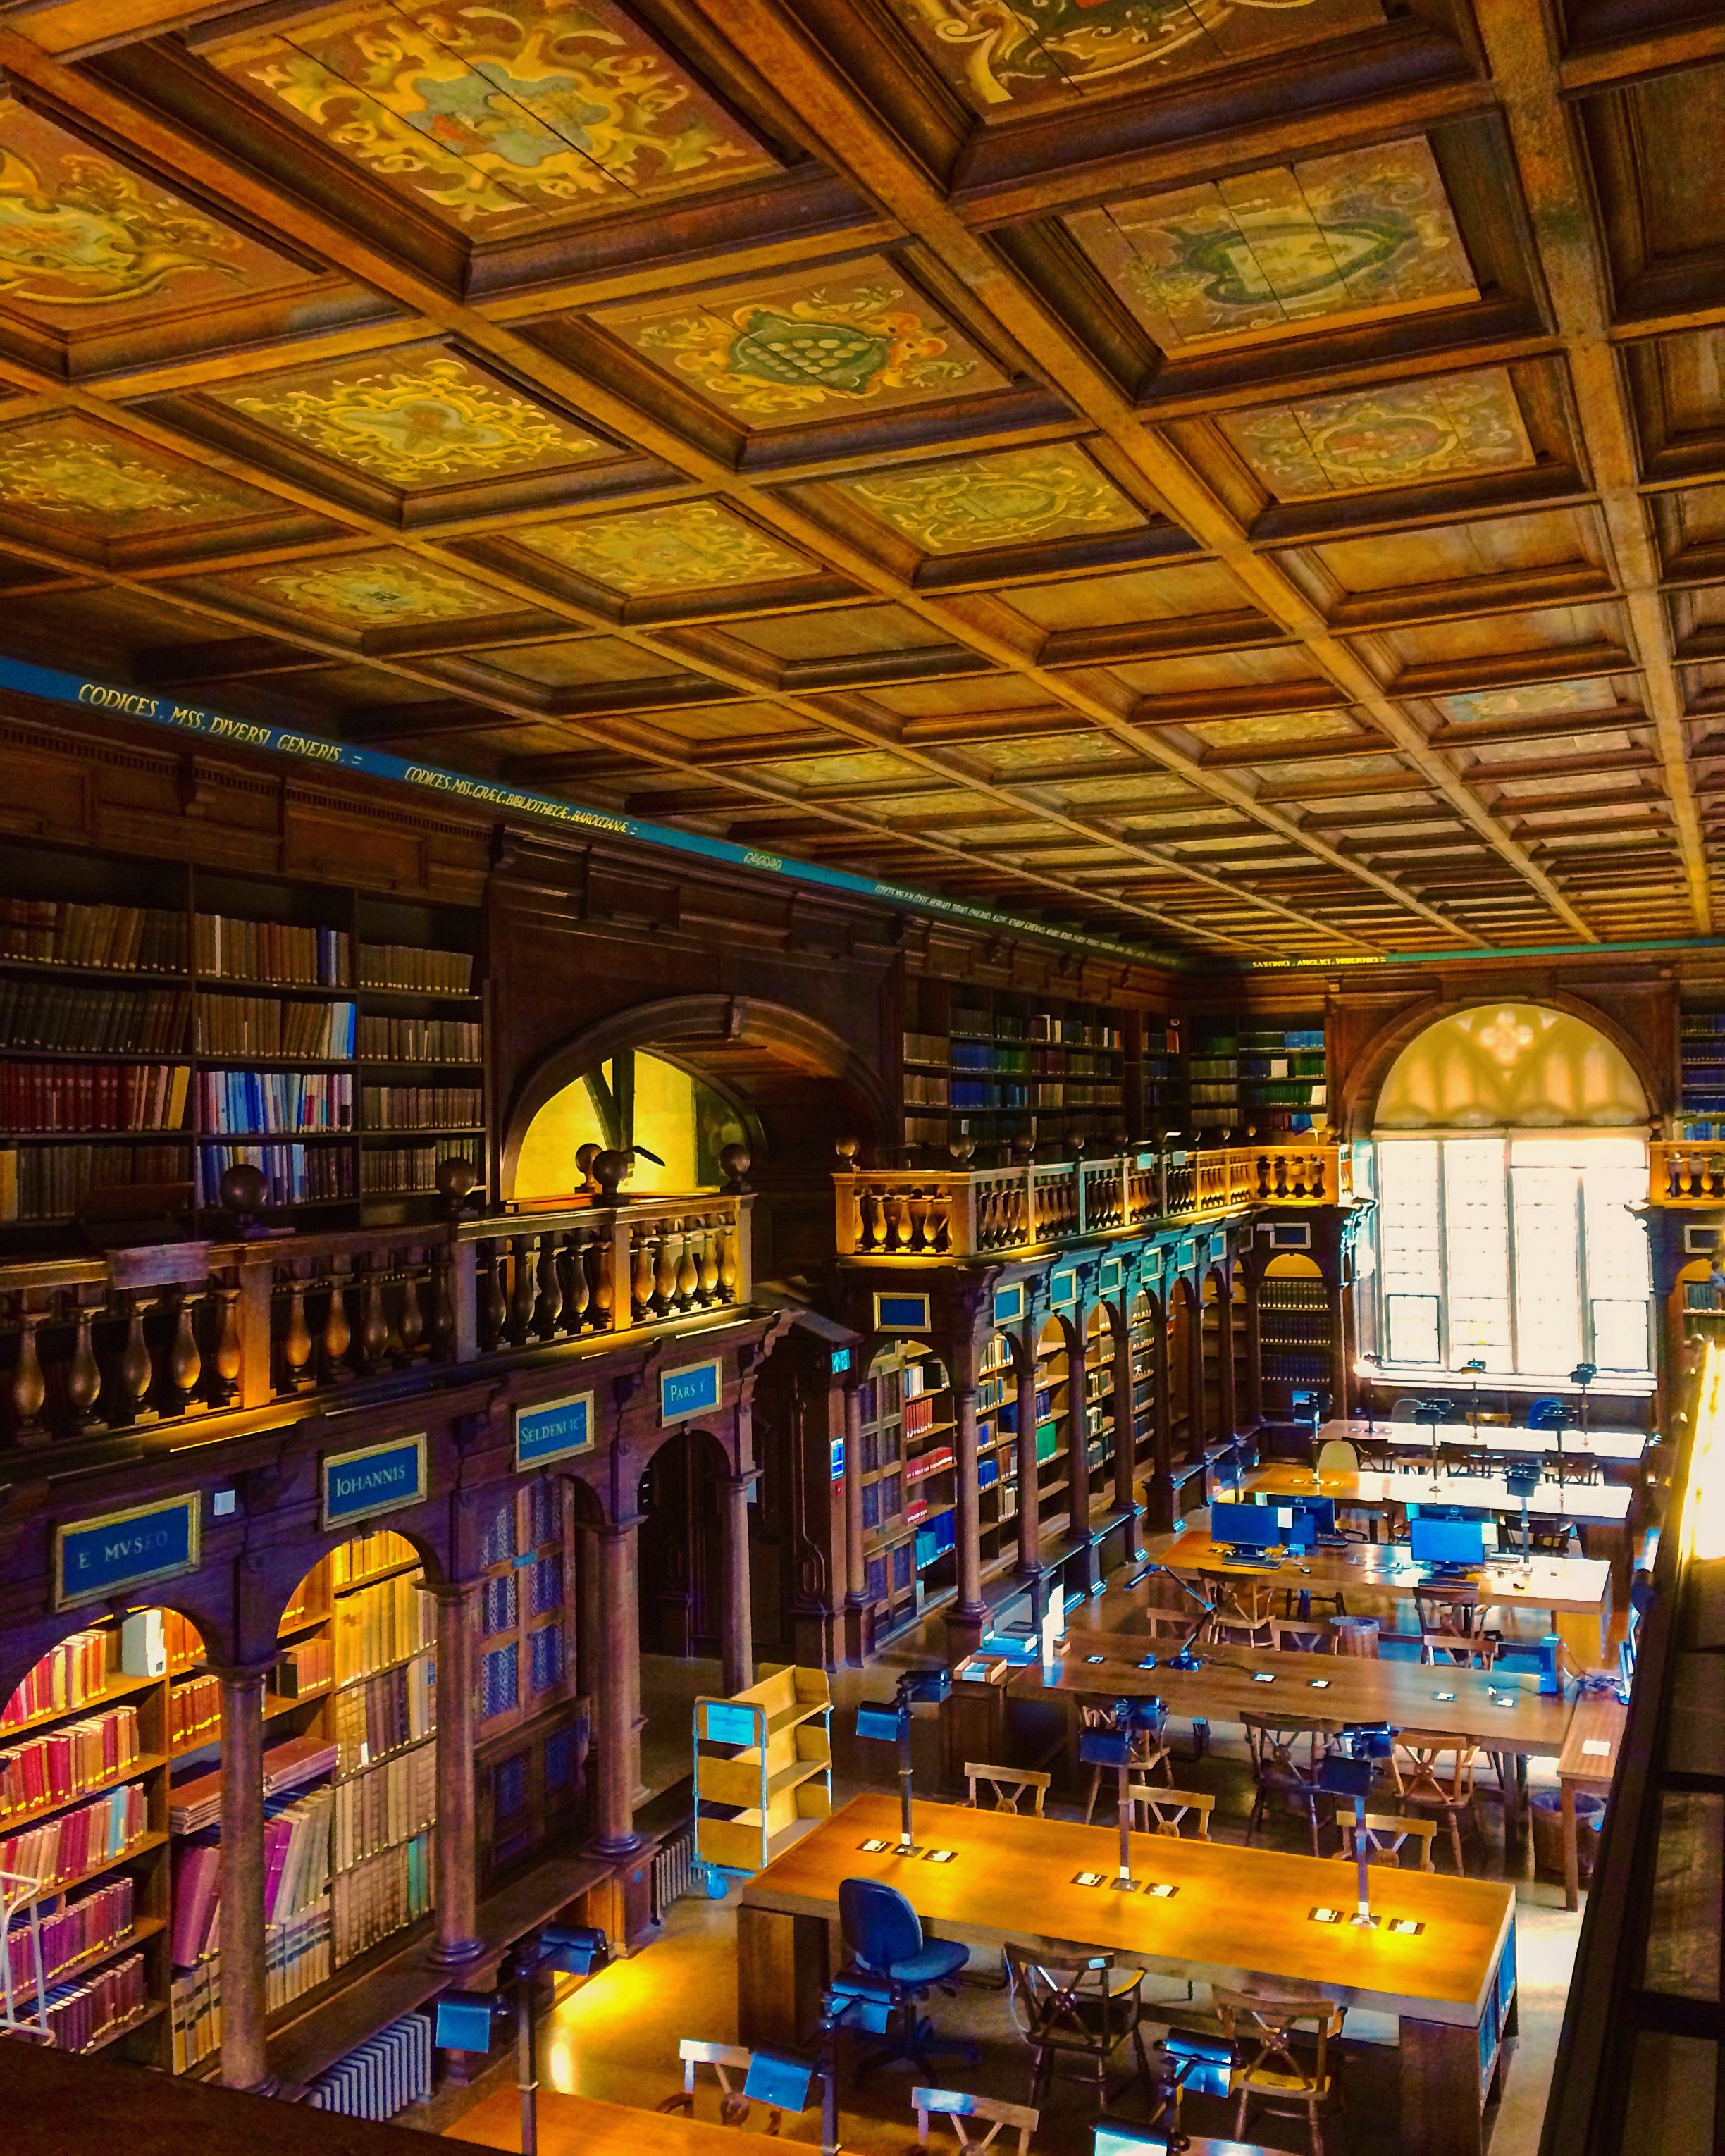 Image of old wooden library interior featuring wooden bookcases, furniture, and detailed ceilings